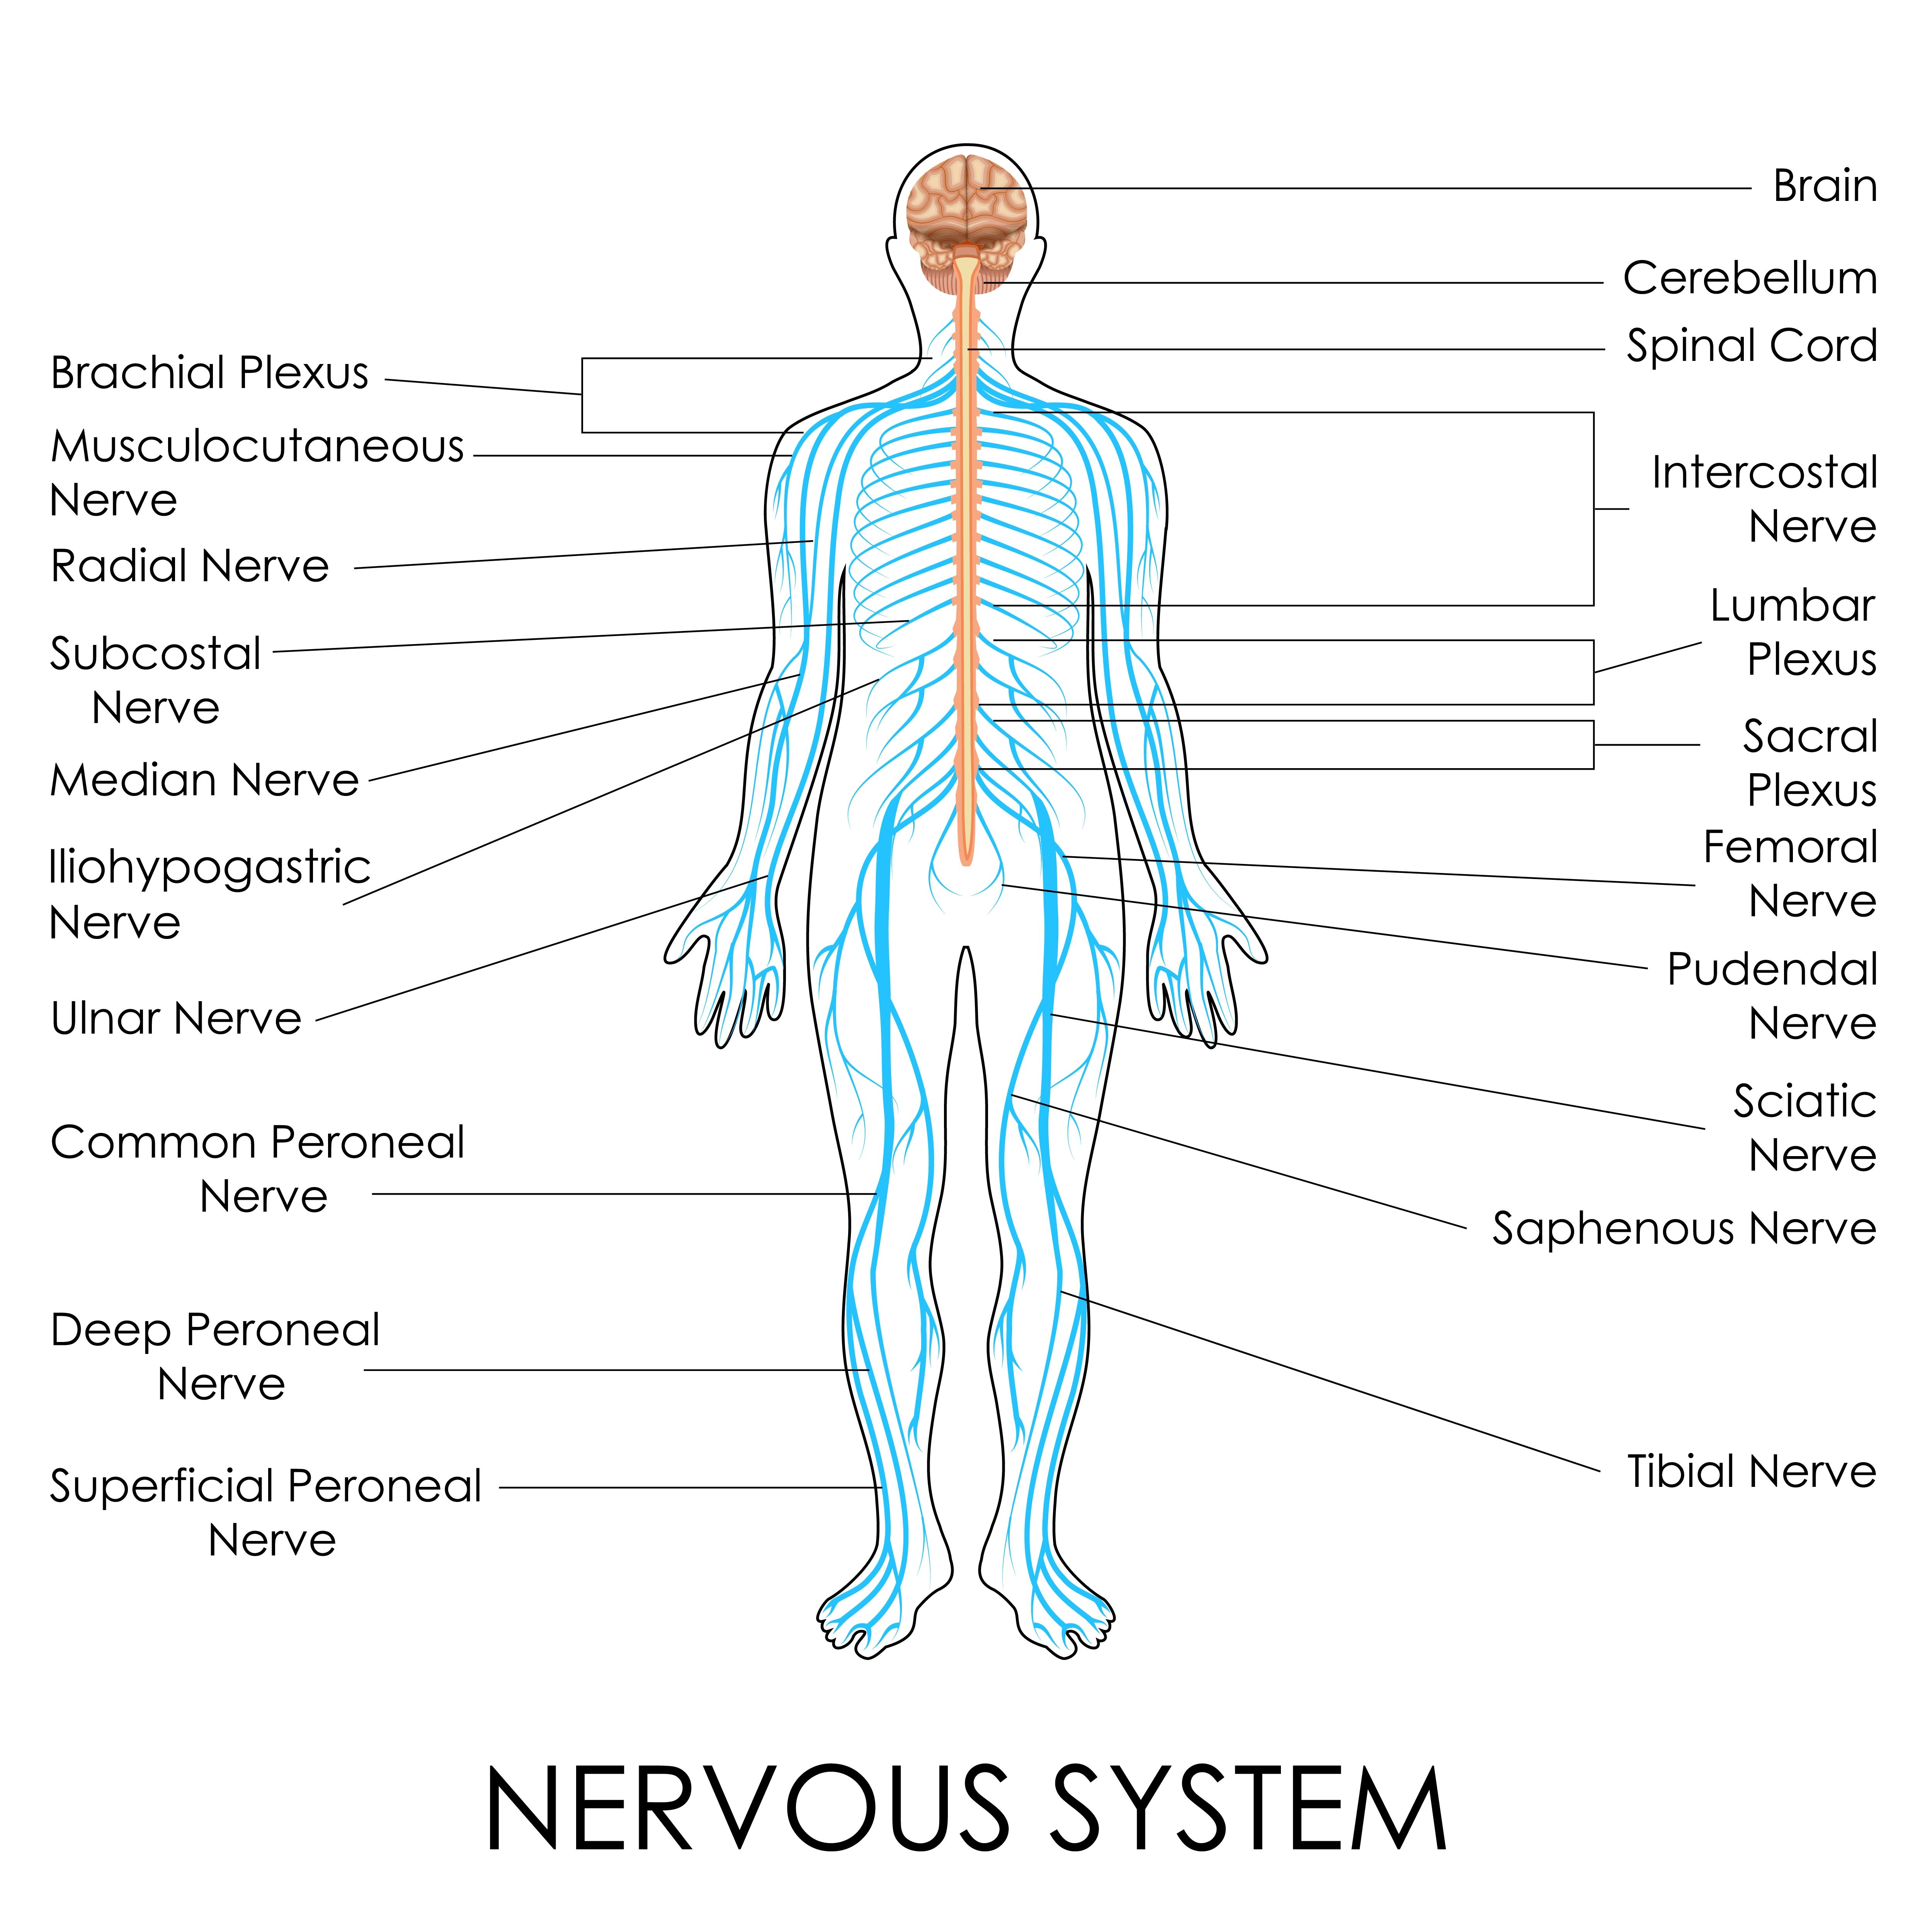 medium resolution of nerves of the body human anatomy diagram